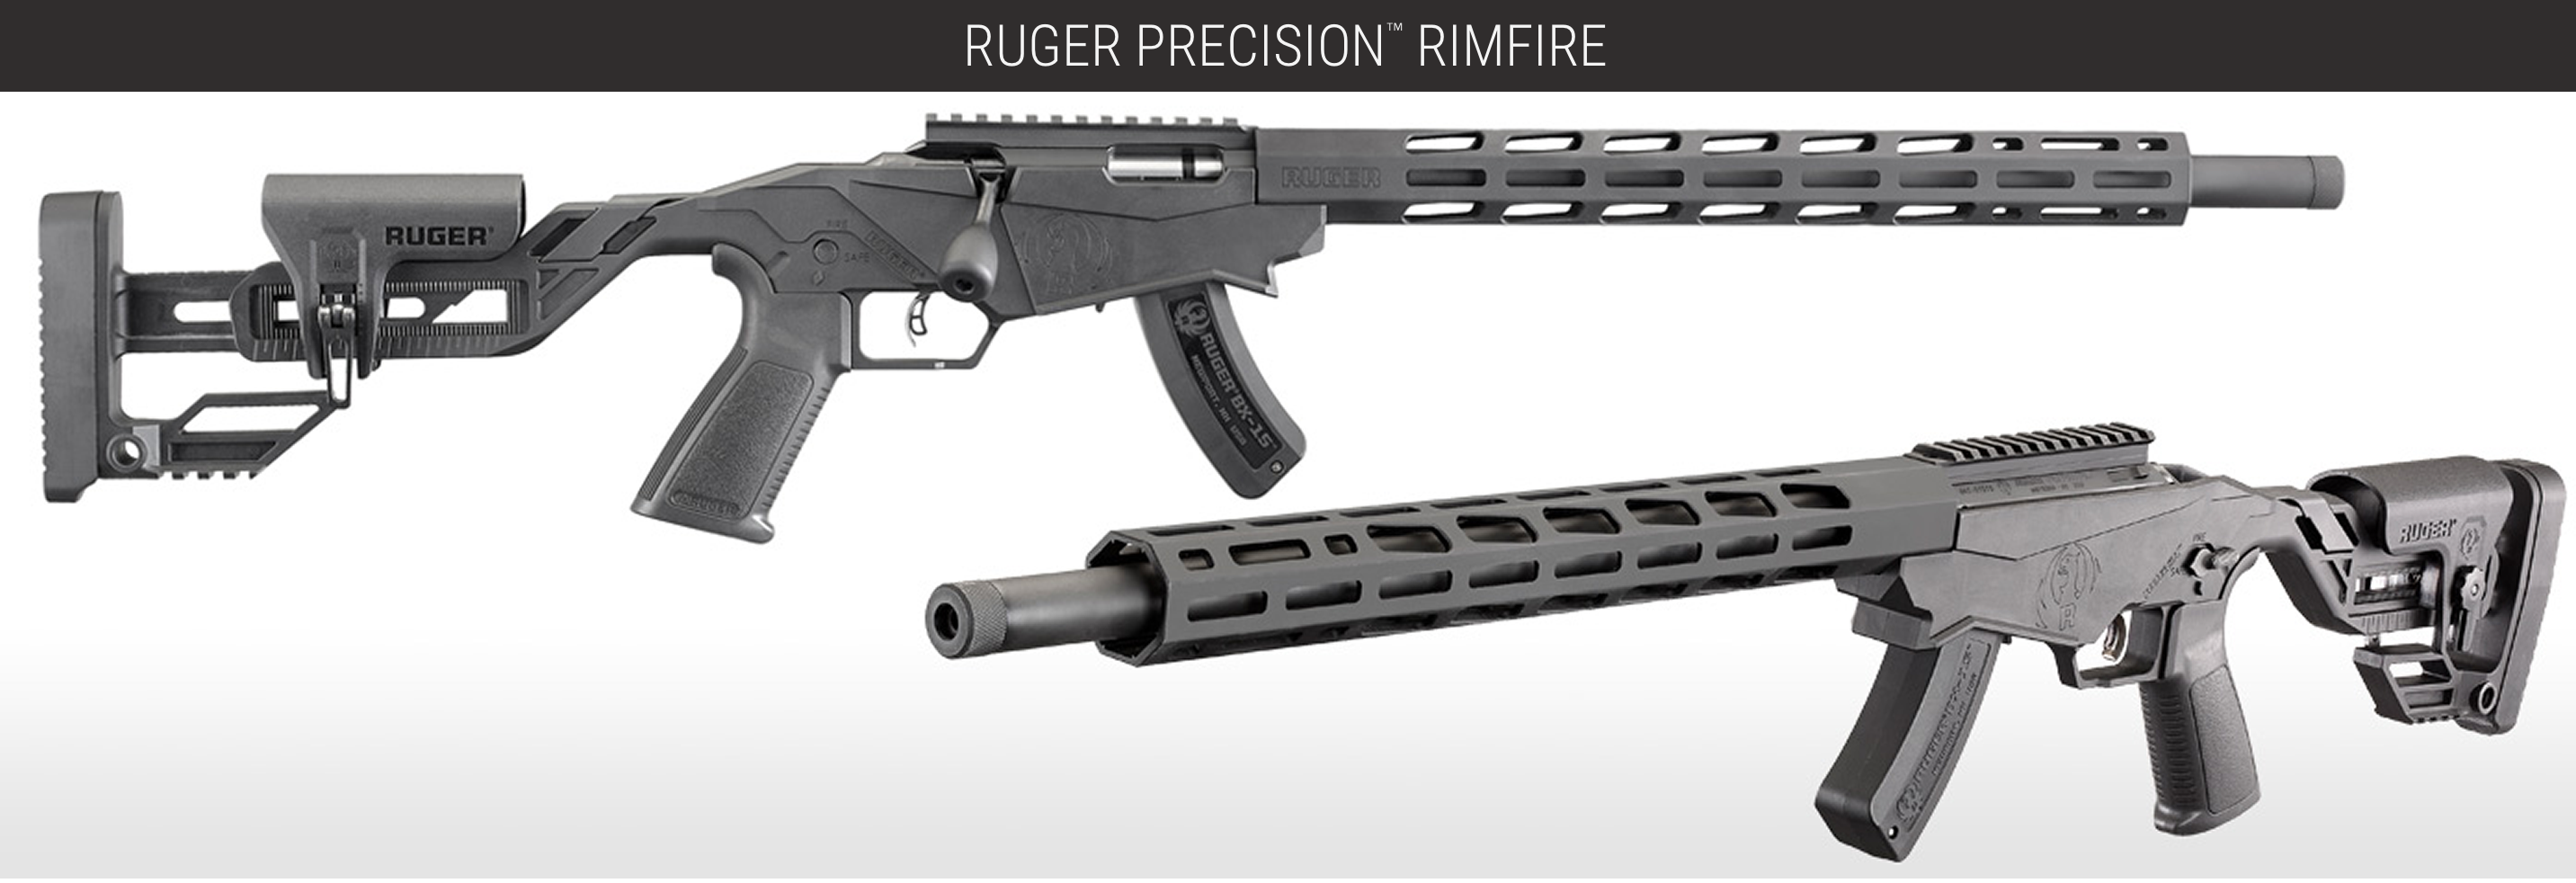 New From Ruger Precision Rifle In 22 Rimfire Firearm Warehouse